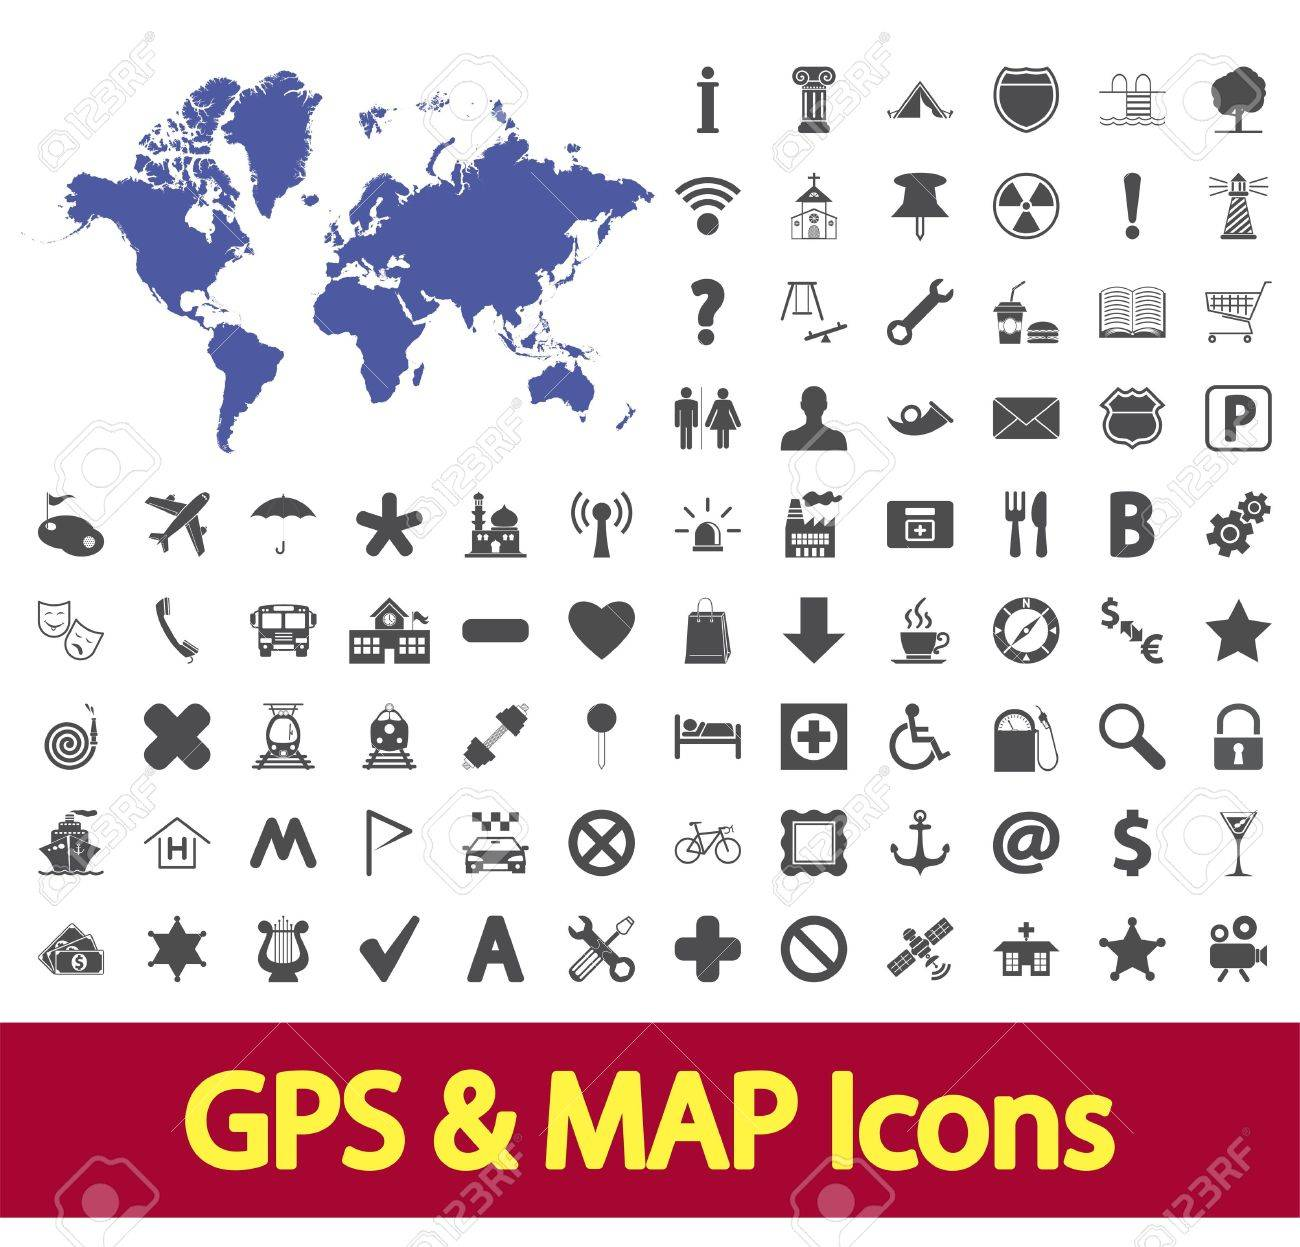 Navigation map icons set  Vector illustration Stock Vector - 18650165